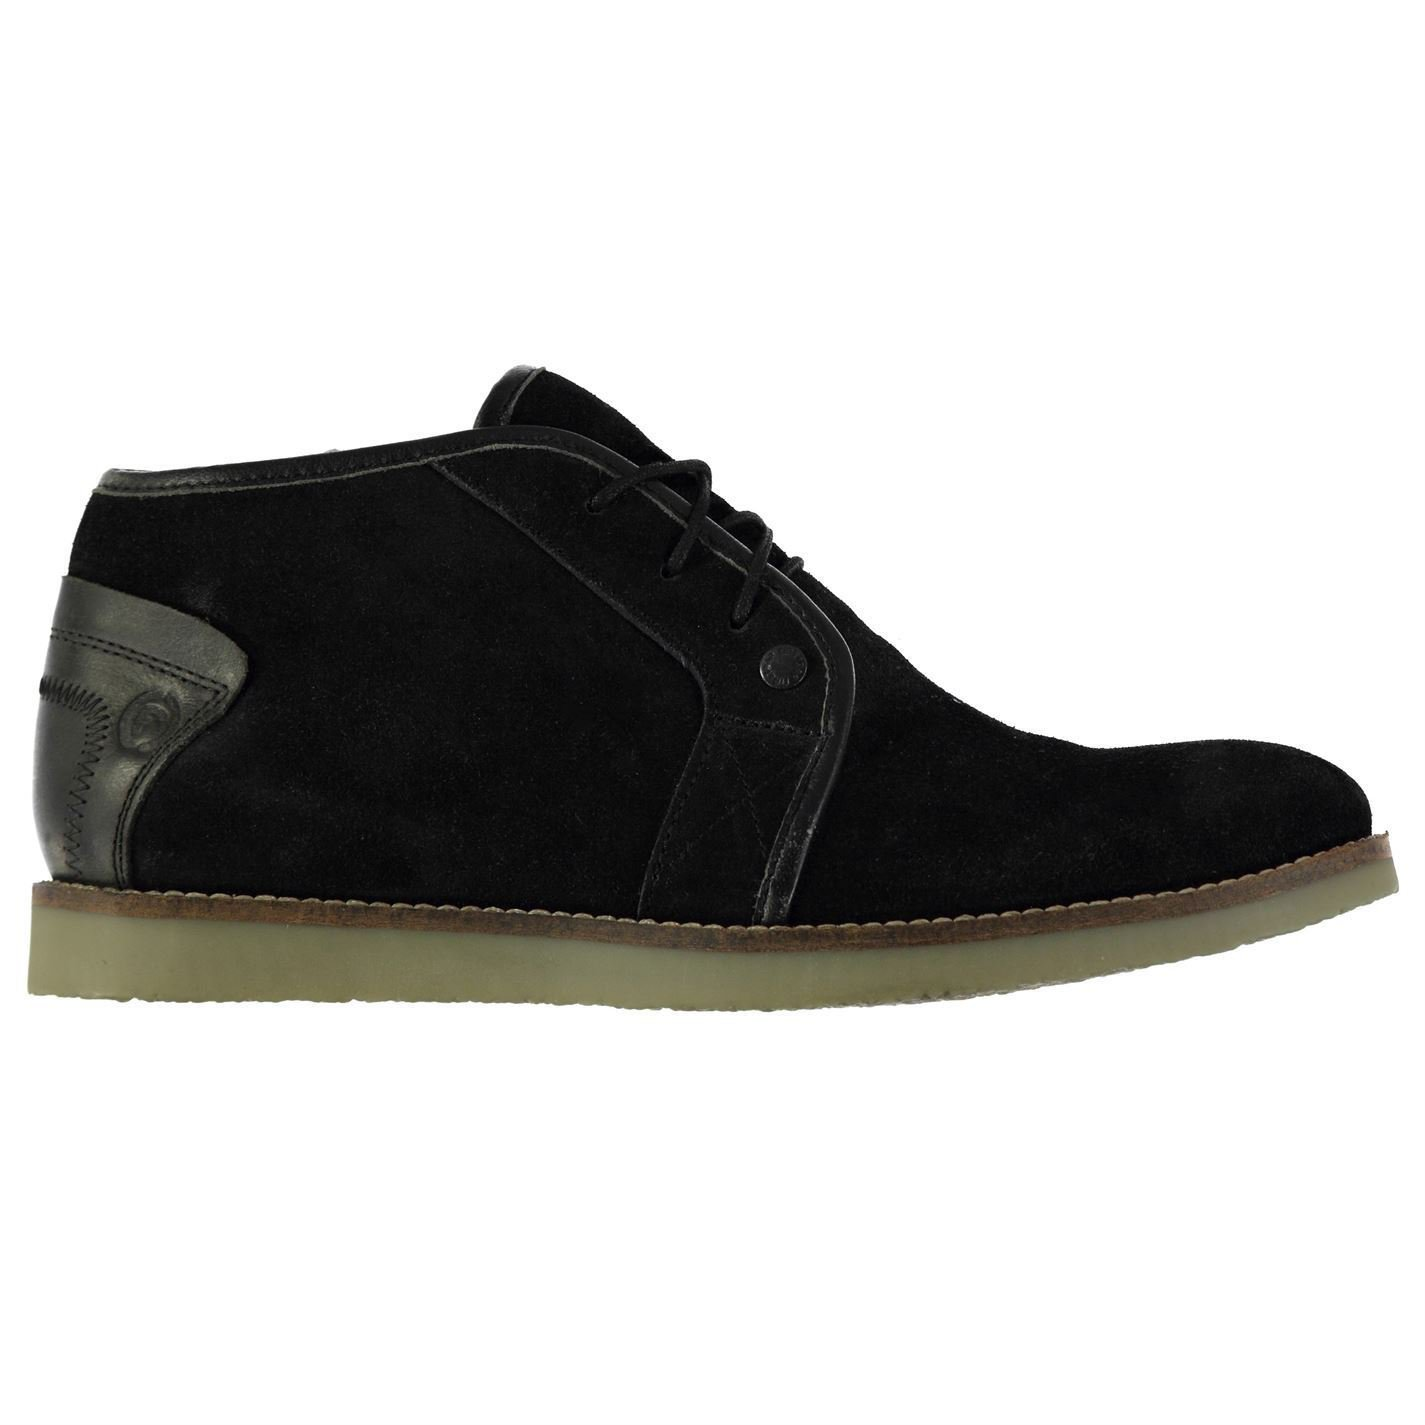 Firetrap Mens Waverly Chukka Boots Reinforced Heel Synthetic Sole Lace Up